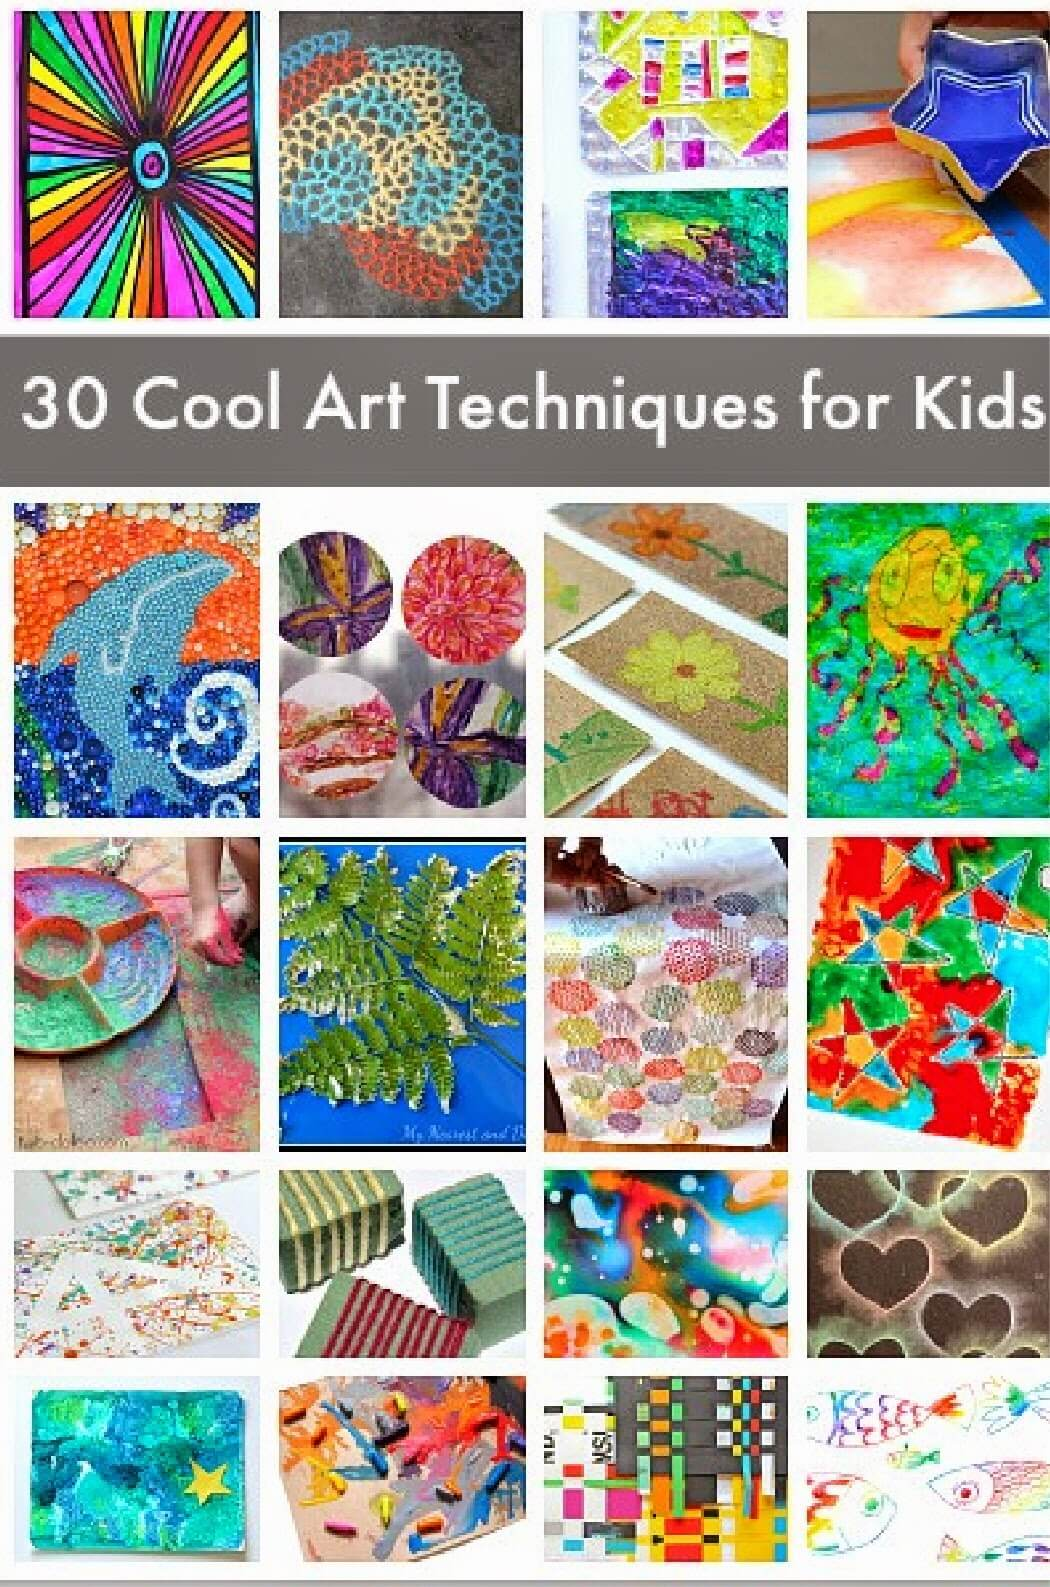 30 awesome art projects for kids #art #kidsactivities #homeschool